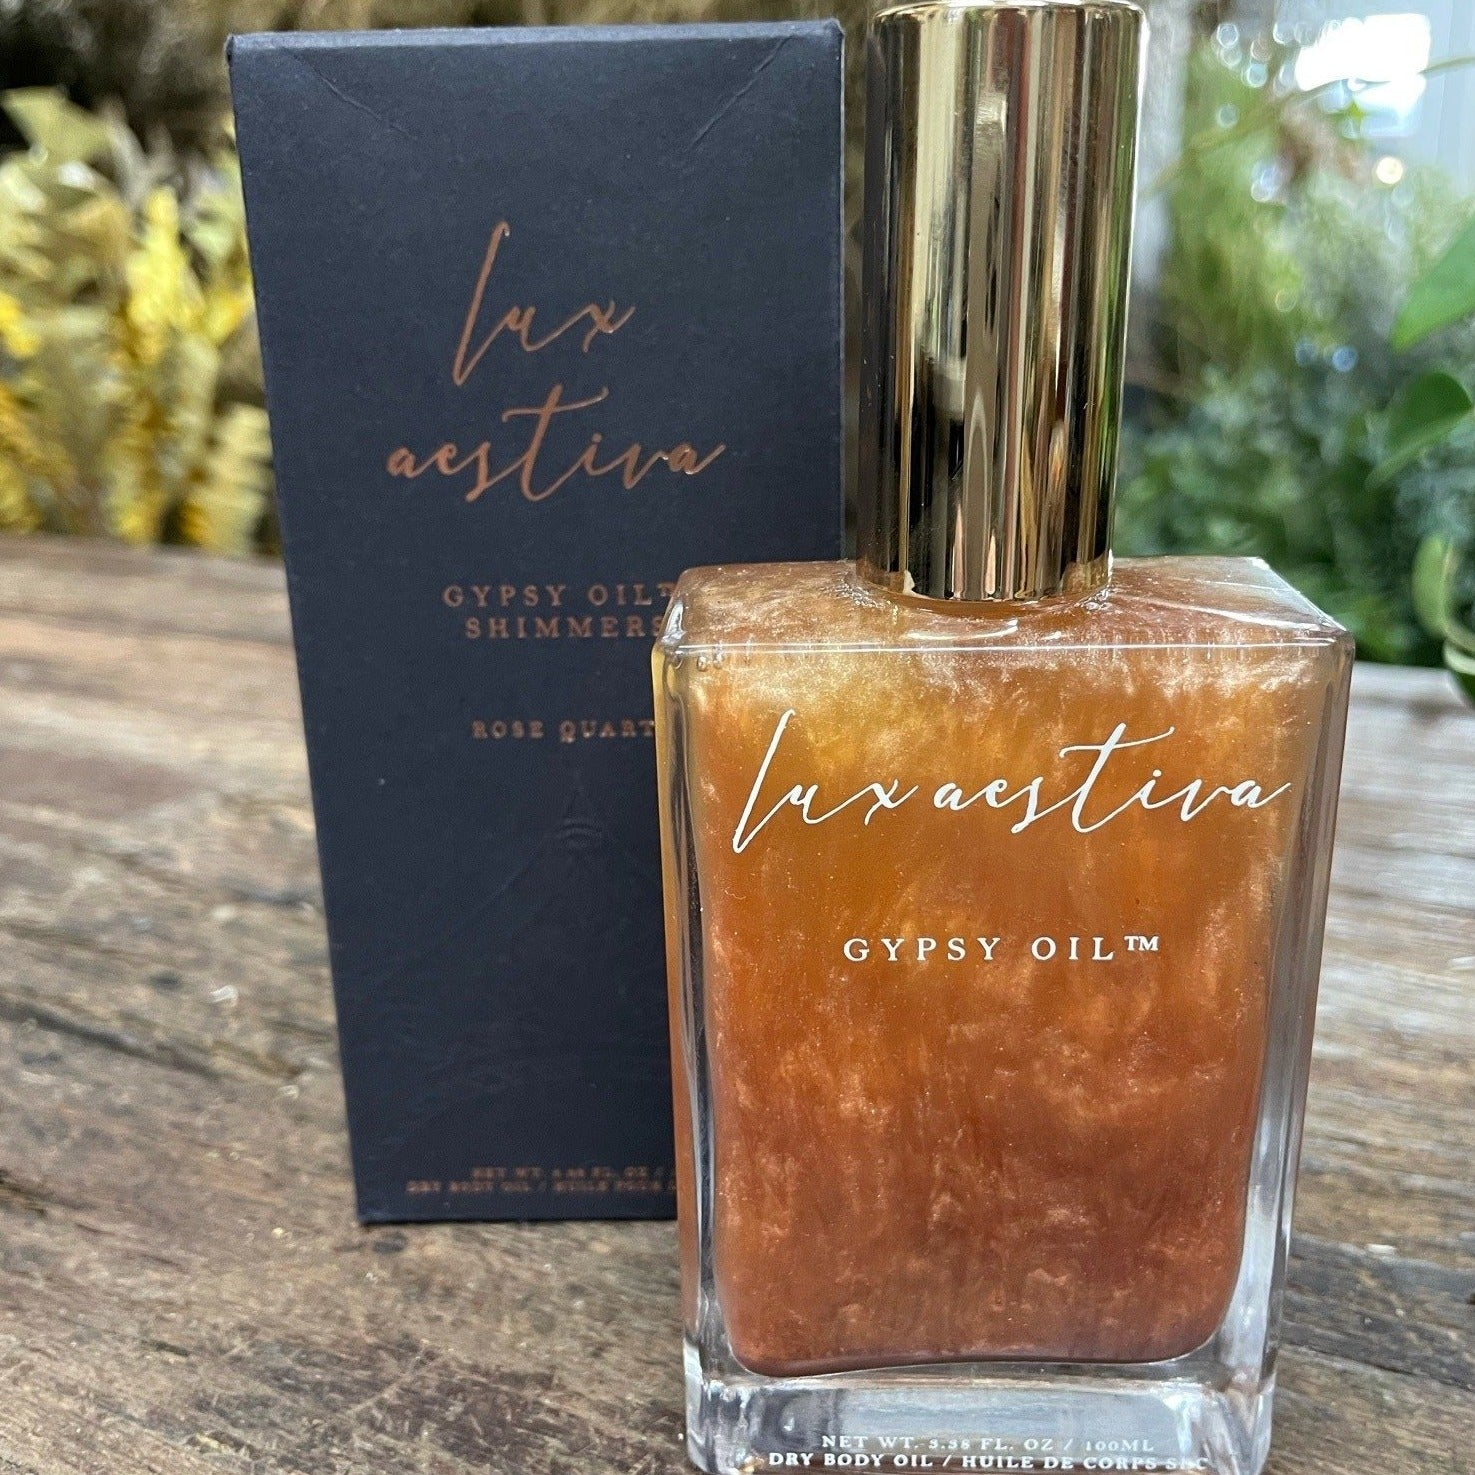 Lux Aestiva Gypsy Oil Shimmer